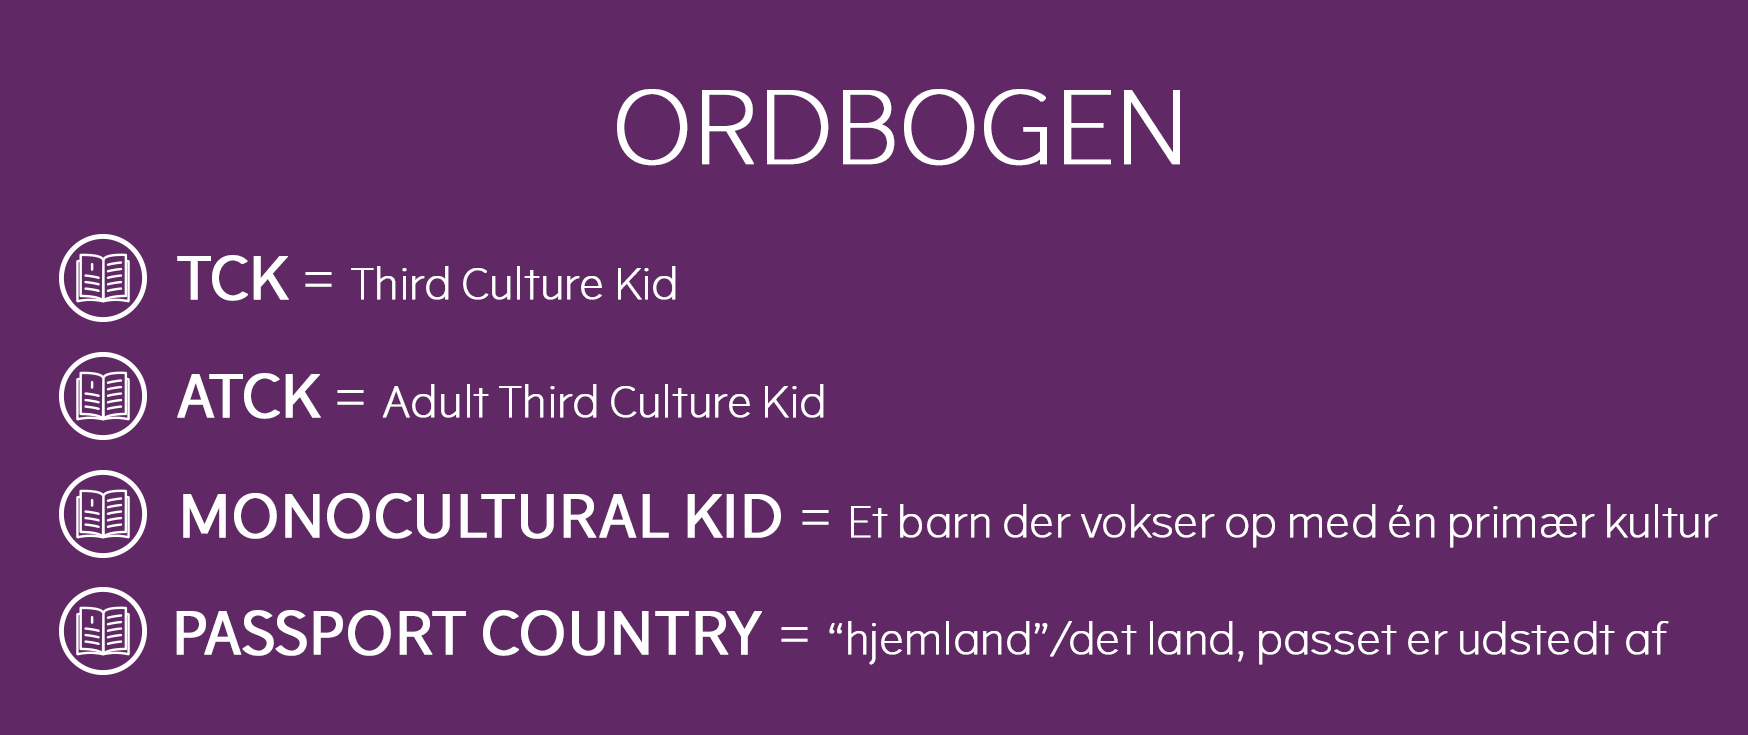 third culture kids (TCK) ordbogen